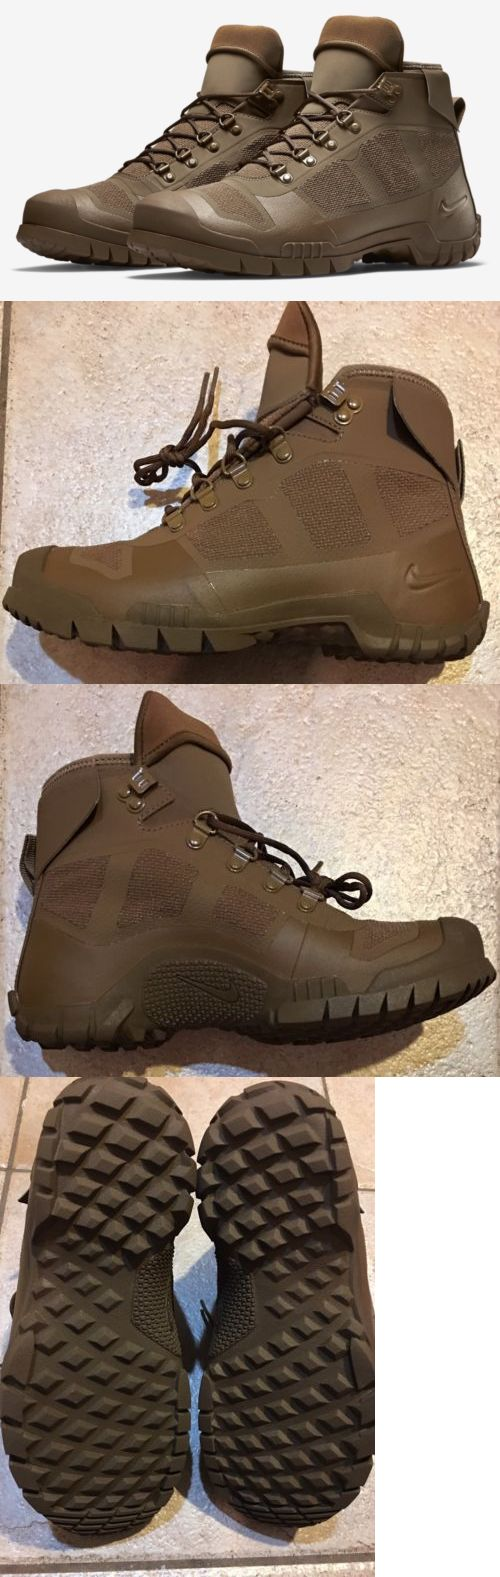 Other Hiking Gear 27363: New Nike Sfb Mountain Military Insulated Boot Boots Men S Size 6 Women S 7.5 -> BUY IT NOW ONLY: $49.99 on eBay!